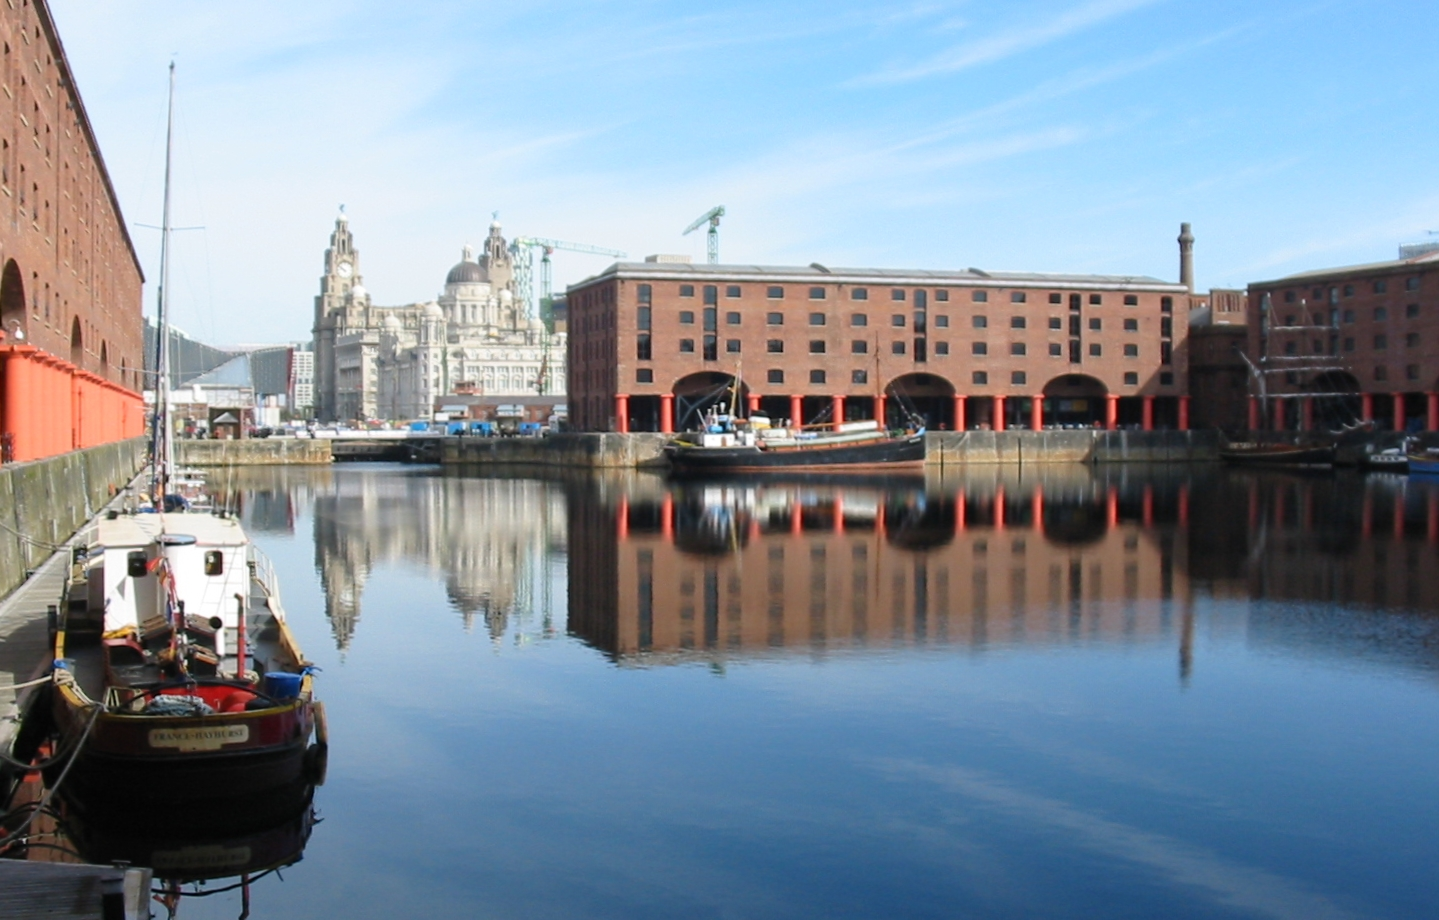 Are you traveling to Liverpool? Check out these great city travel tips before you get to town!